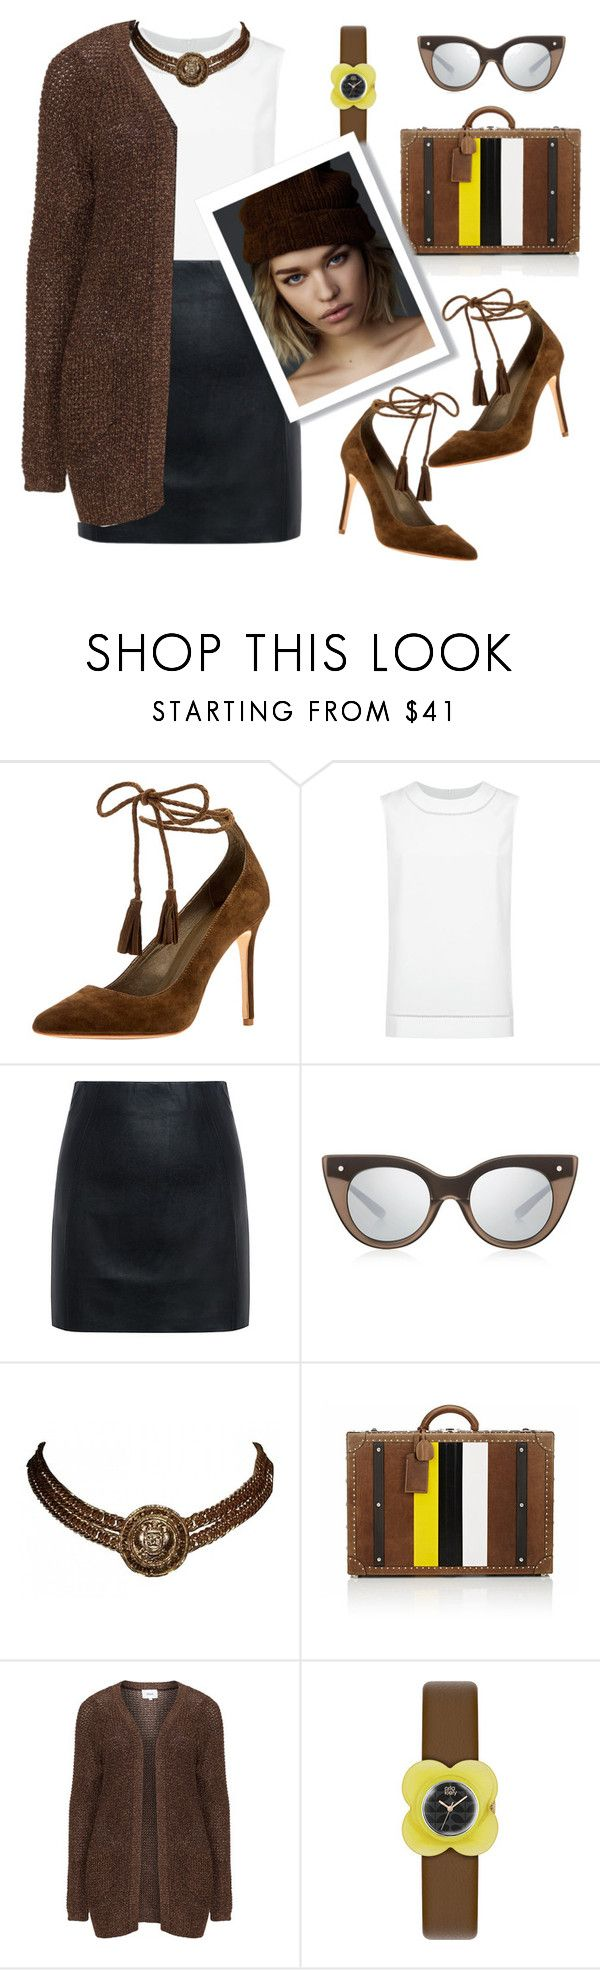 """""""Choco"""" by liligwada ❤ liked on Polyvore featuring Joie, St. John, McQ by Alexander McQueen, Le Specs Luxe, Chanel, Ghurka, Zizzi and Orla Kiely"""